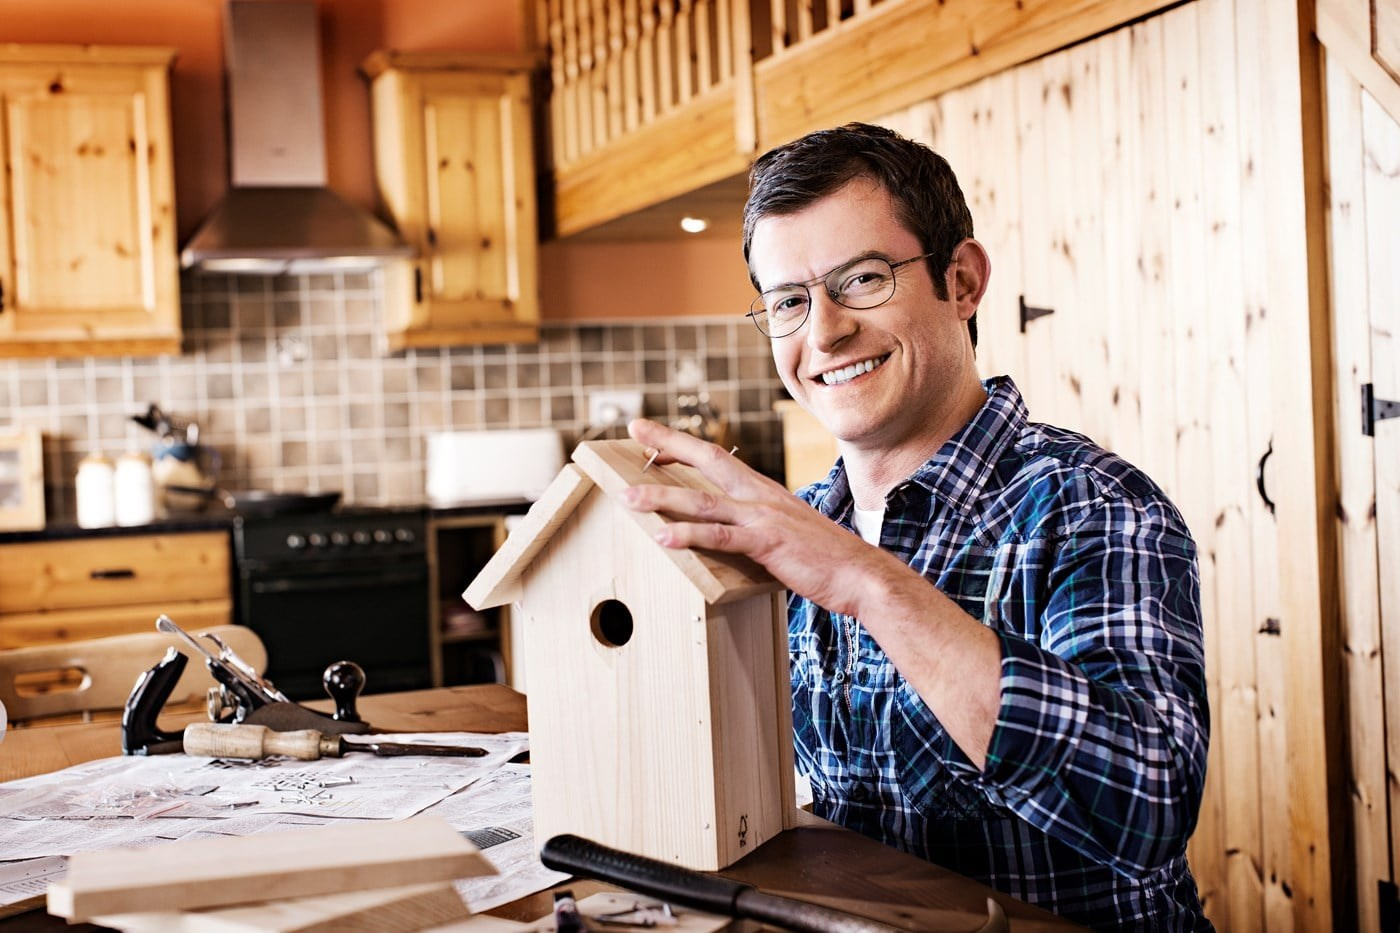 Male wearing eyeglasses building wooden bird house